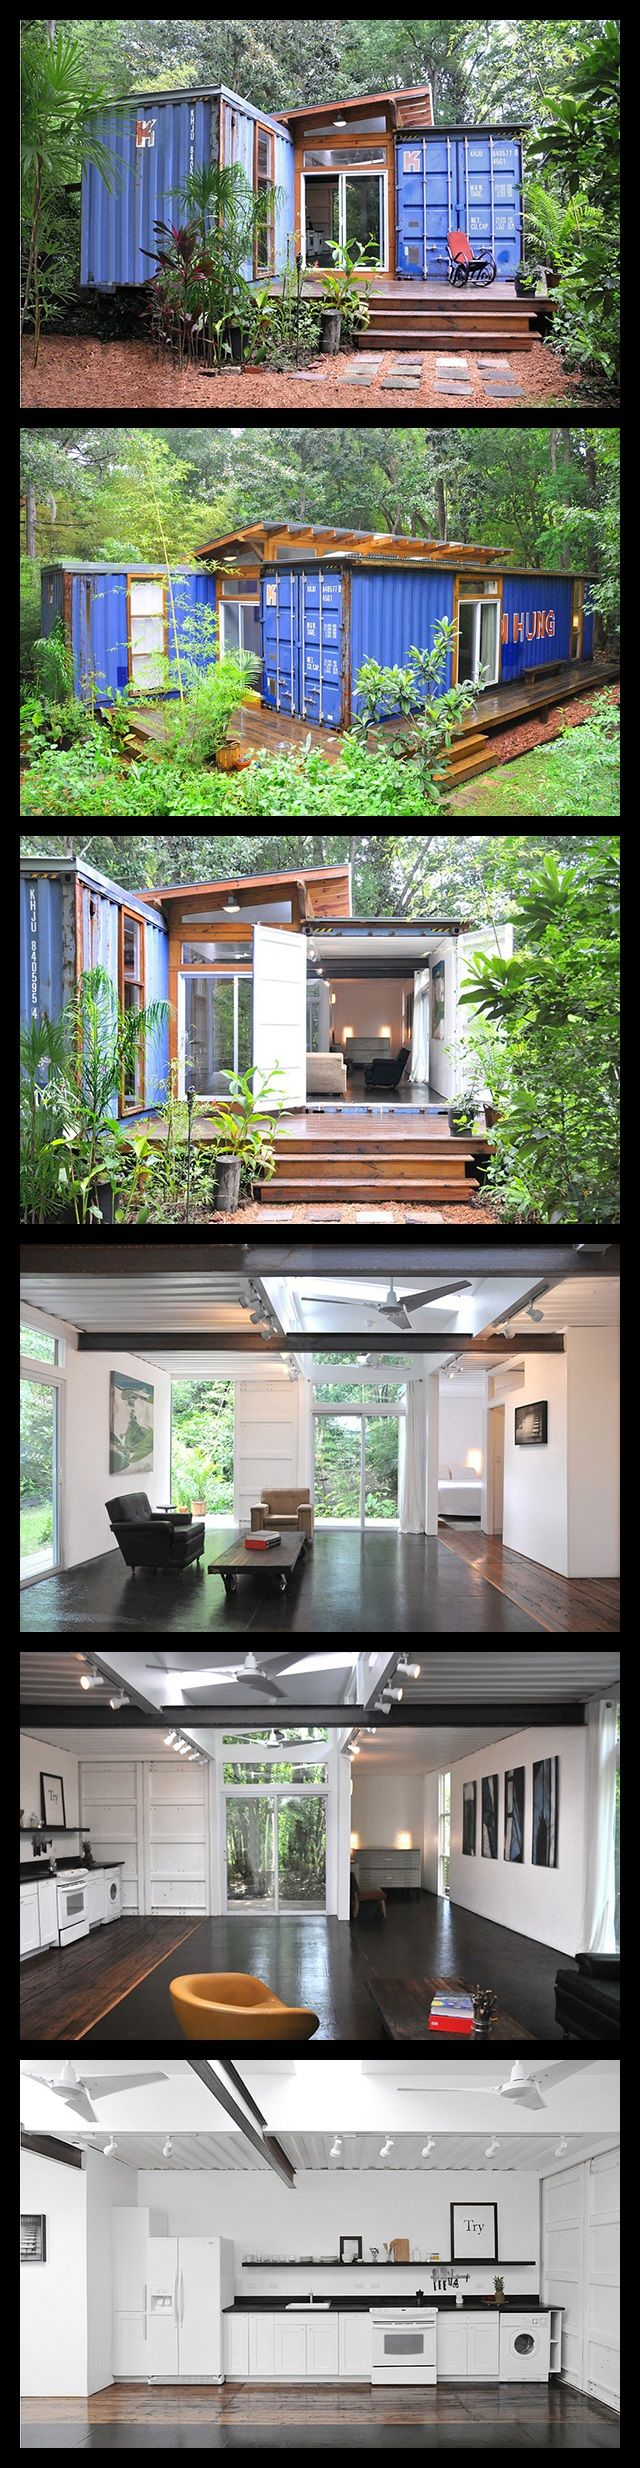 Pin von april hundley auf tiny houses pinterest for Wohnideen container